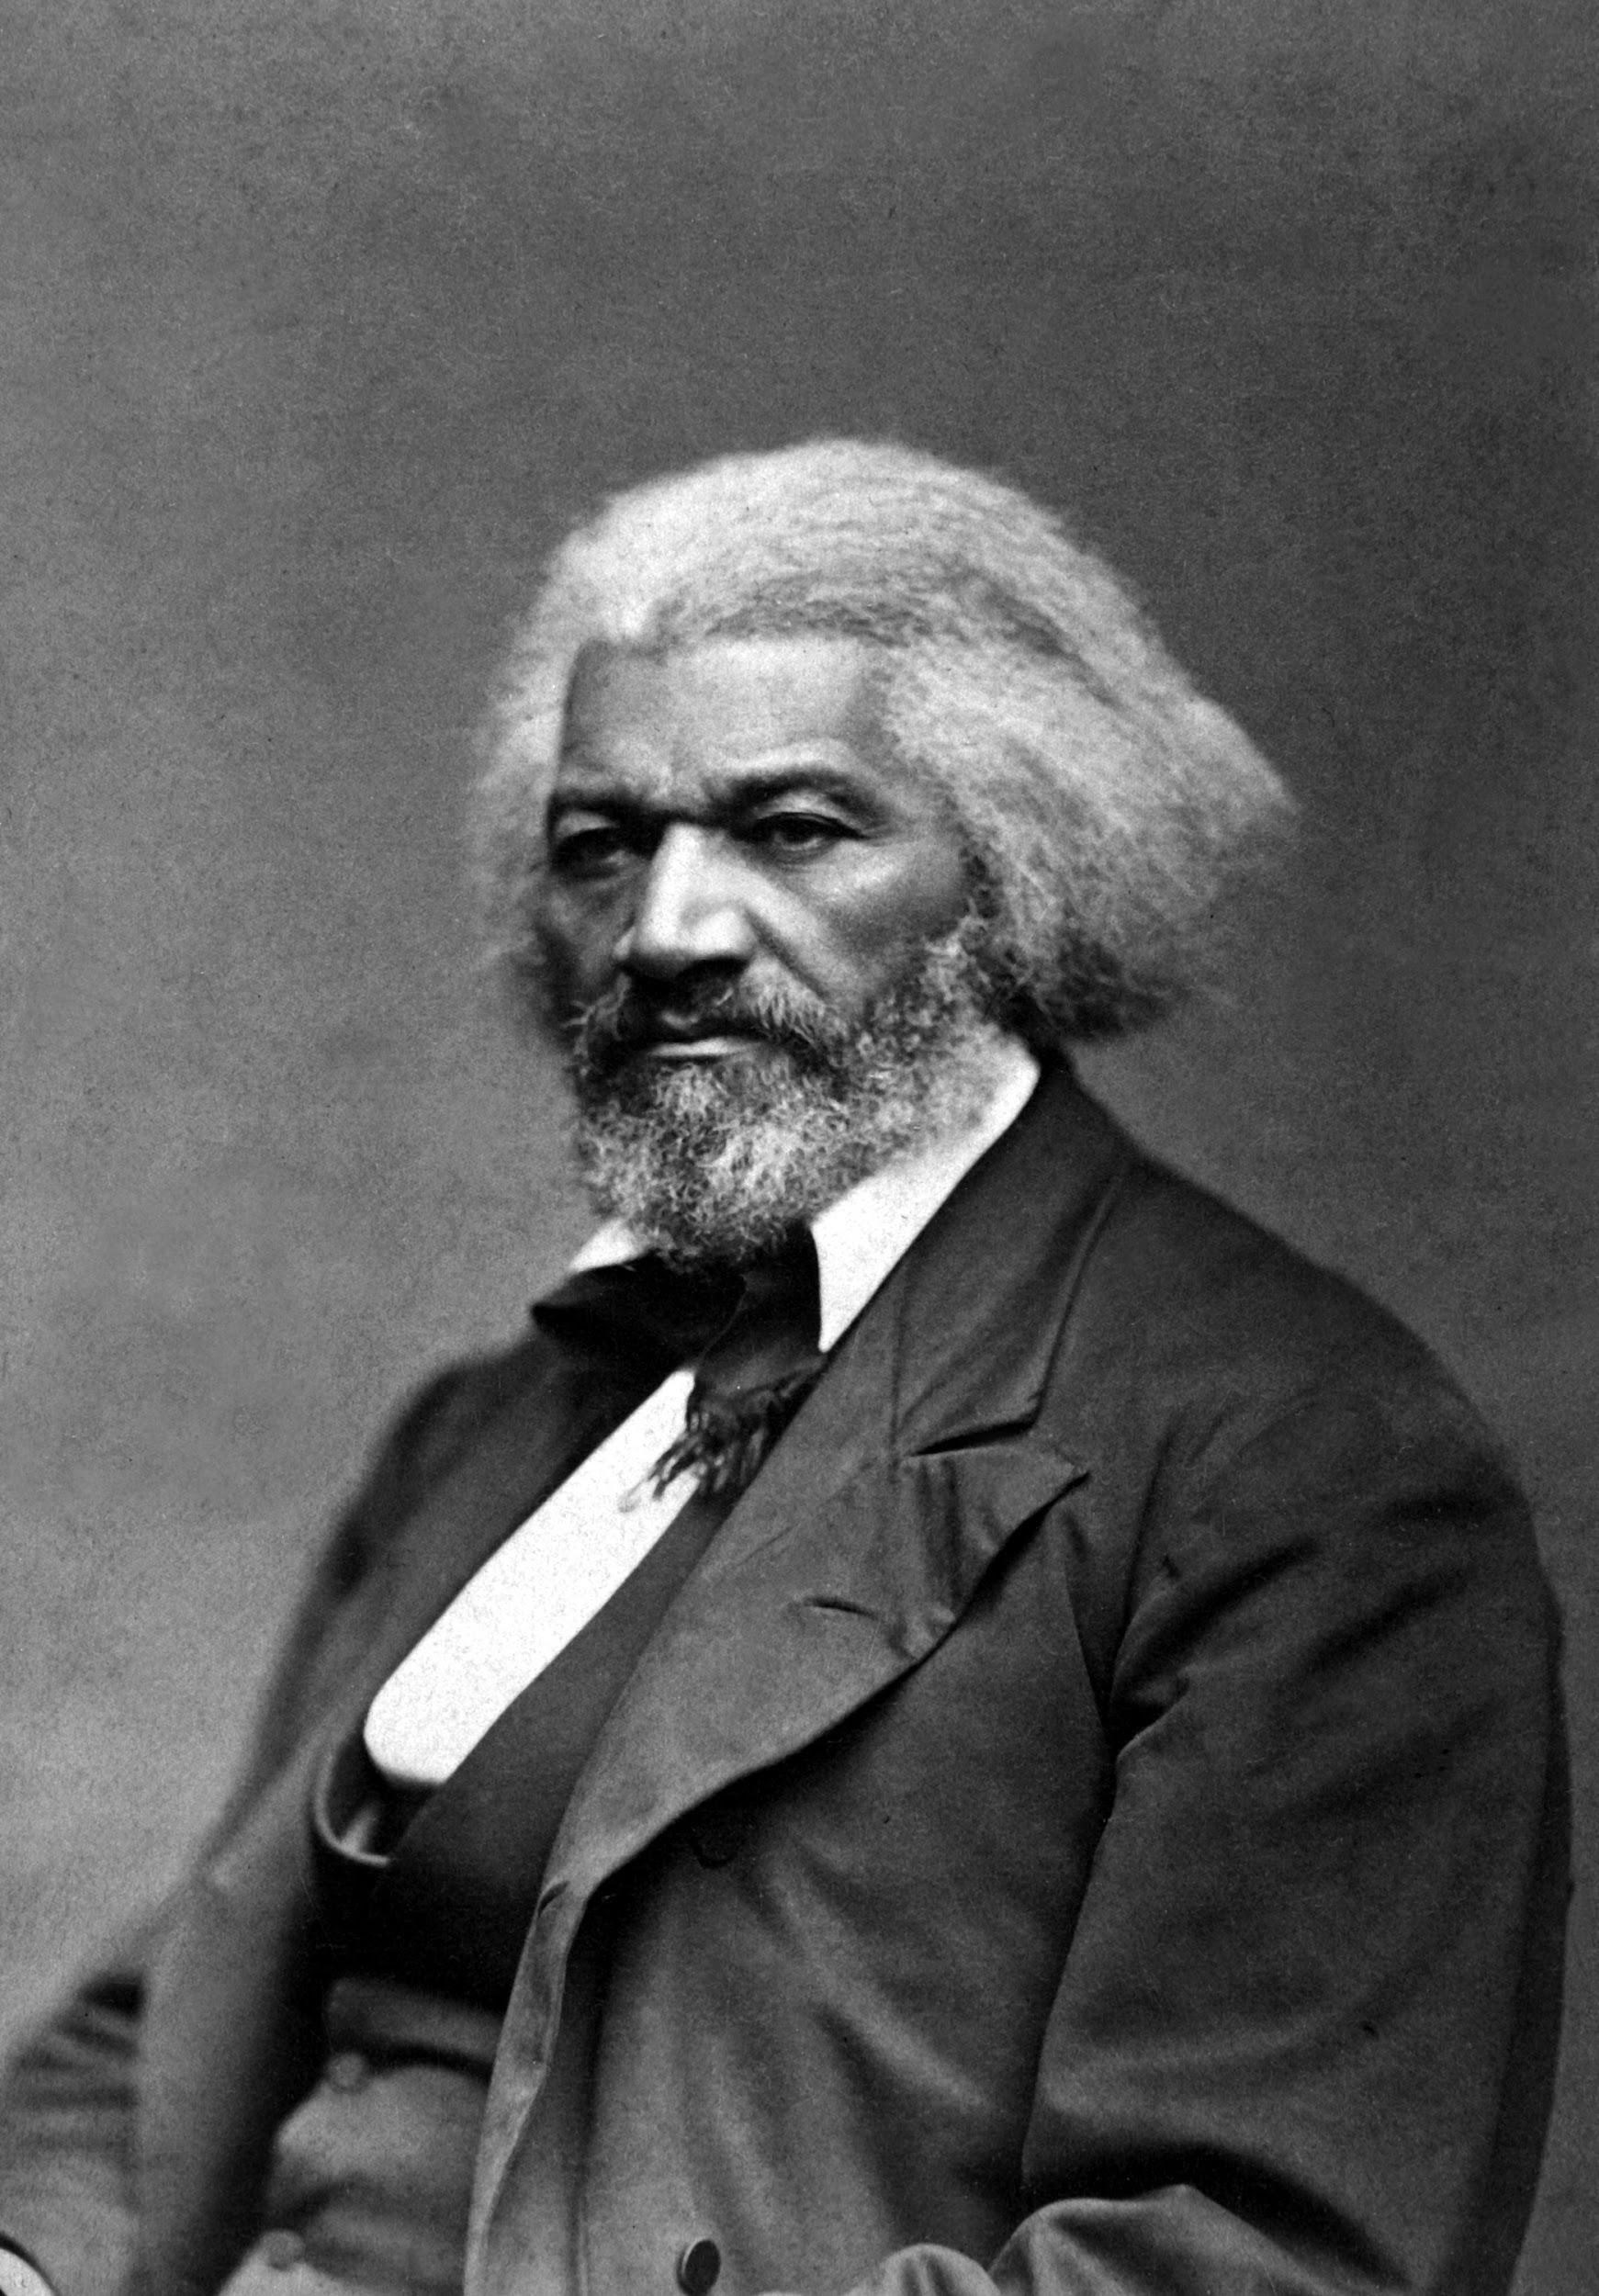 Portrait of Frederick Douglass, ca. 1879.